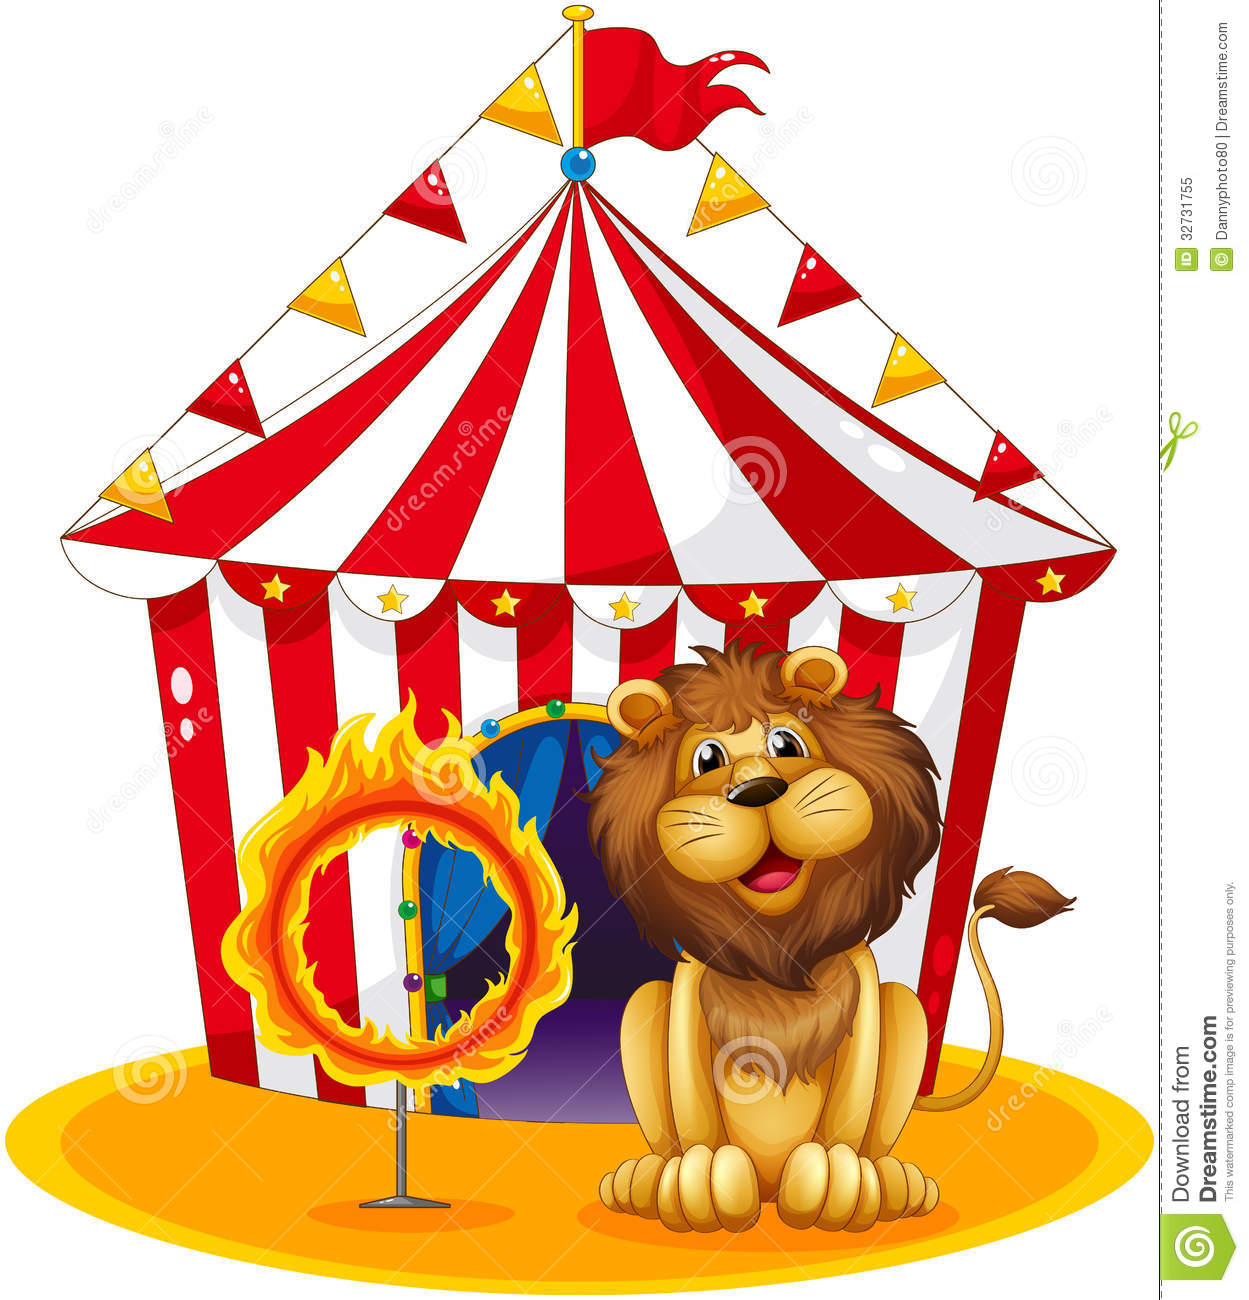 lion-fire-hoop-circus-illustration-white-background-32731755.jpg